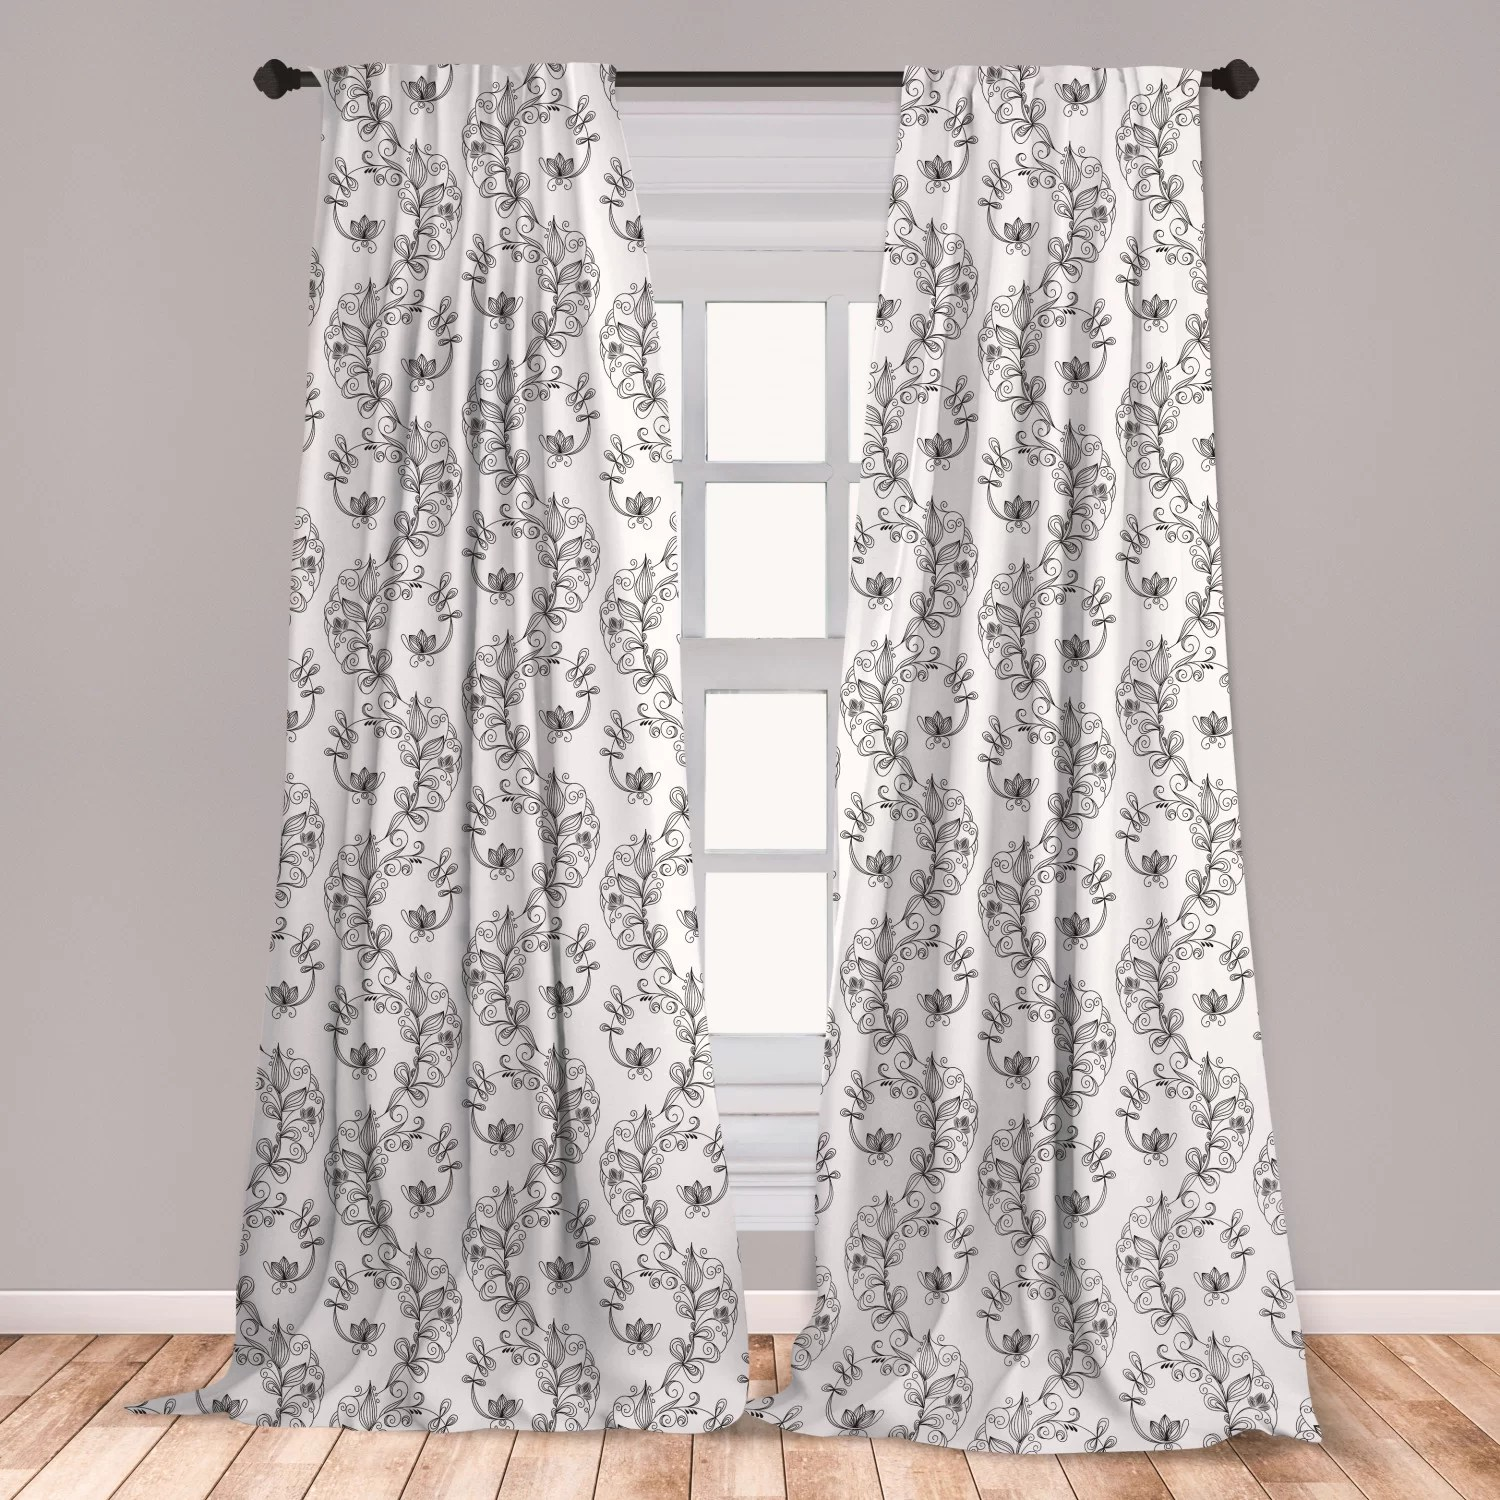 ambesonne black and white curtains scroll and swirls pattern with tiny stems full of leaves and lilies window treatments 2 panel set for living room